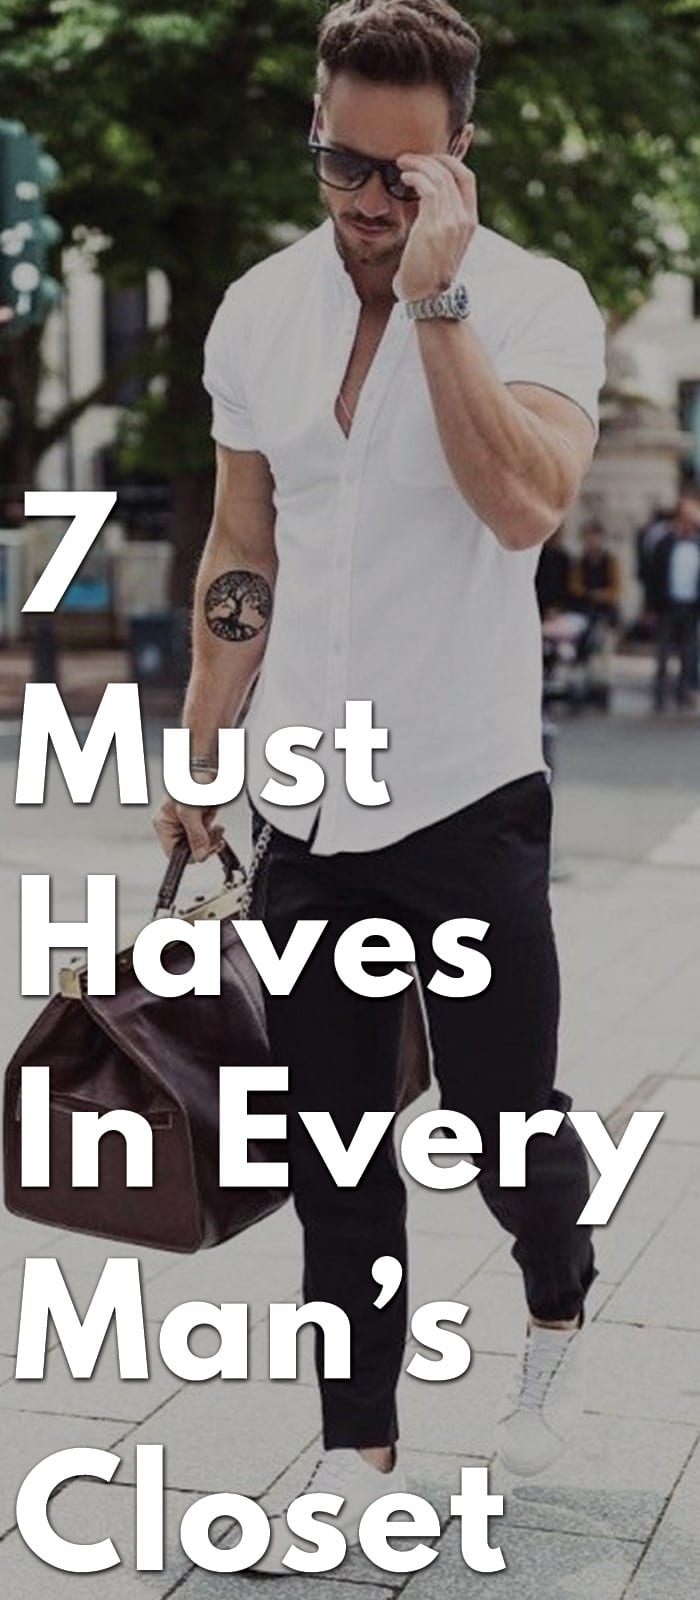 7-Must-Haves-In-Every-Man's-Closet